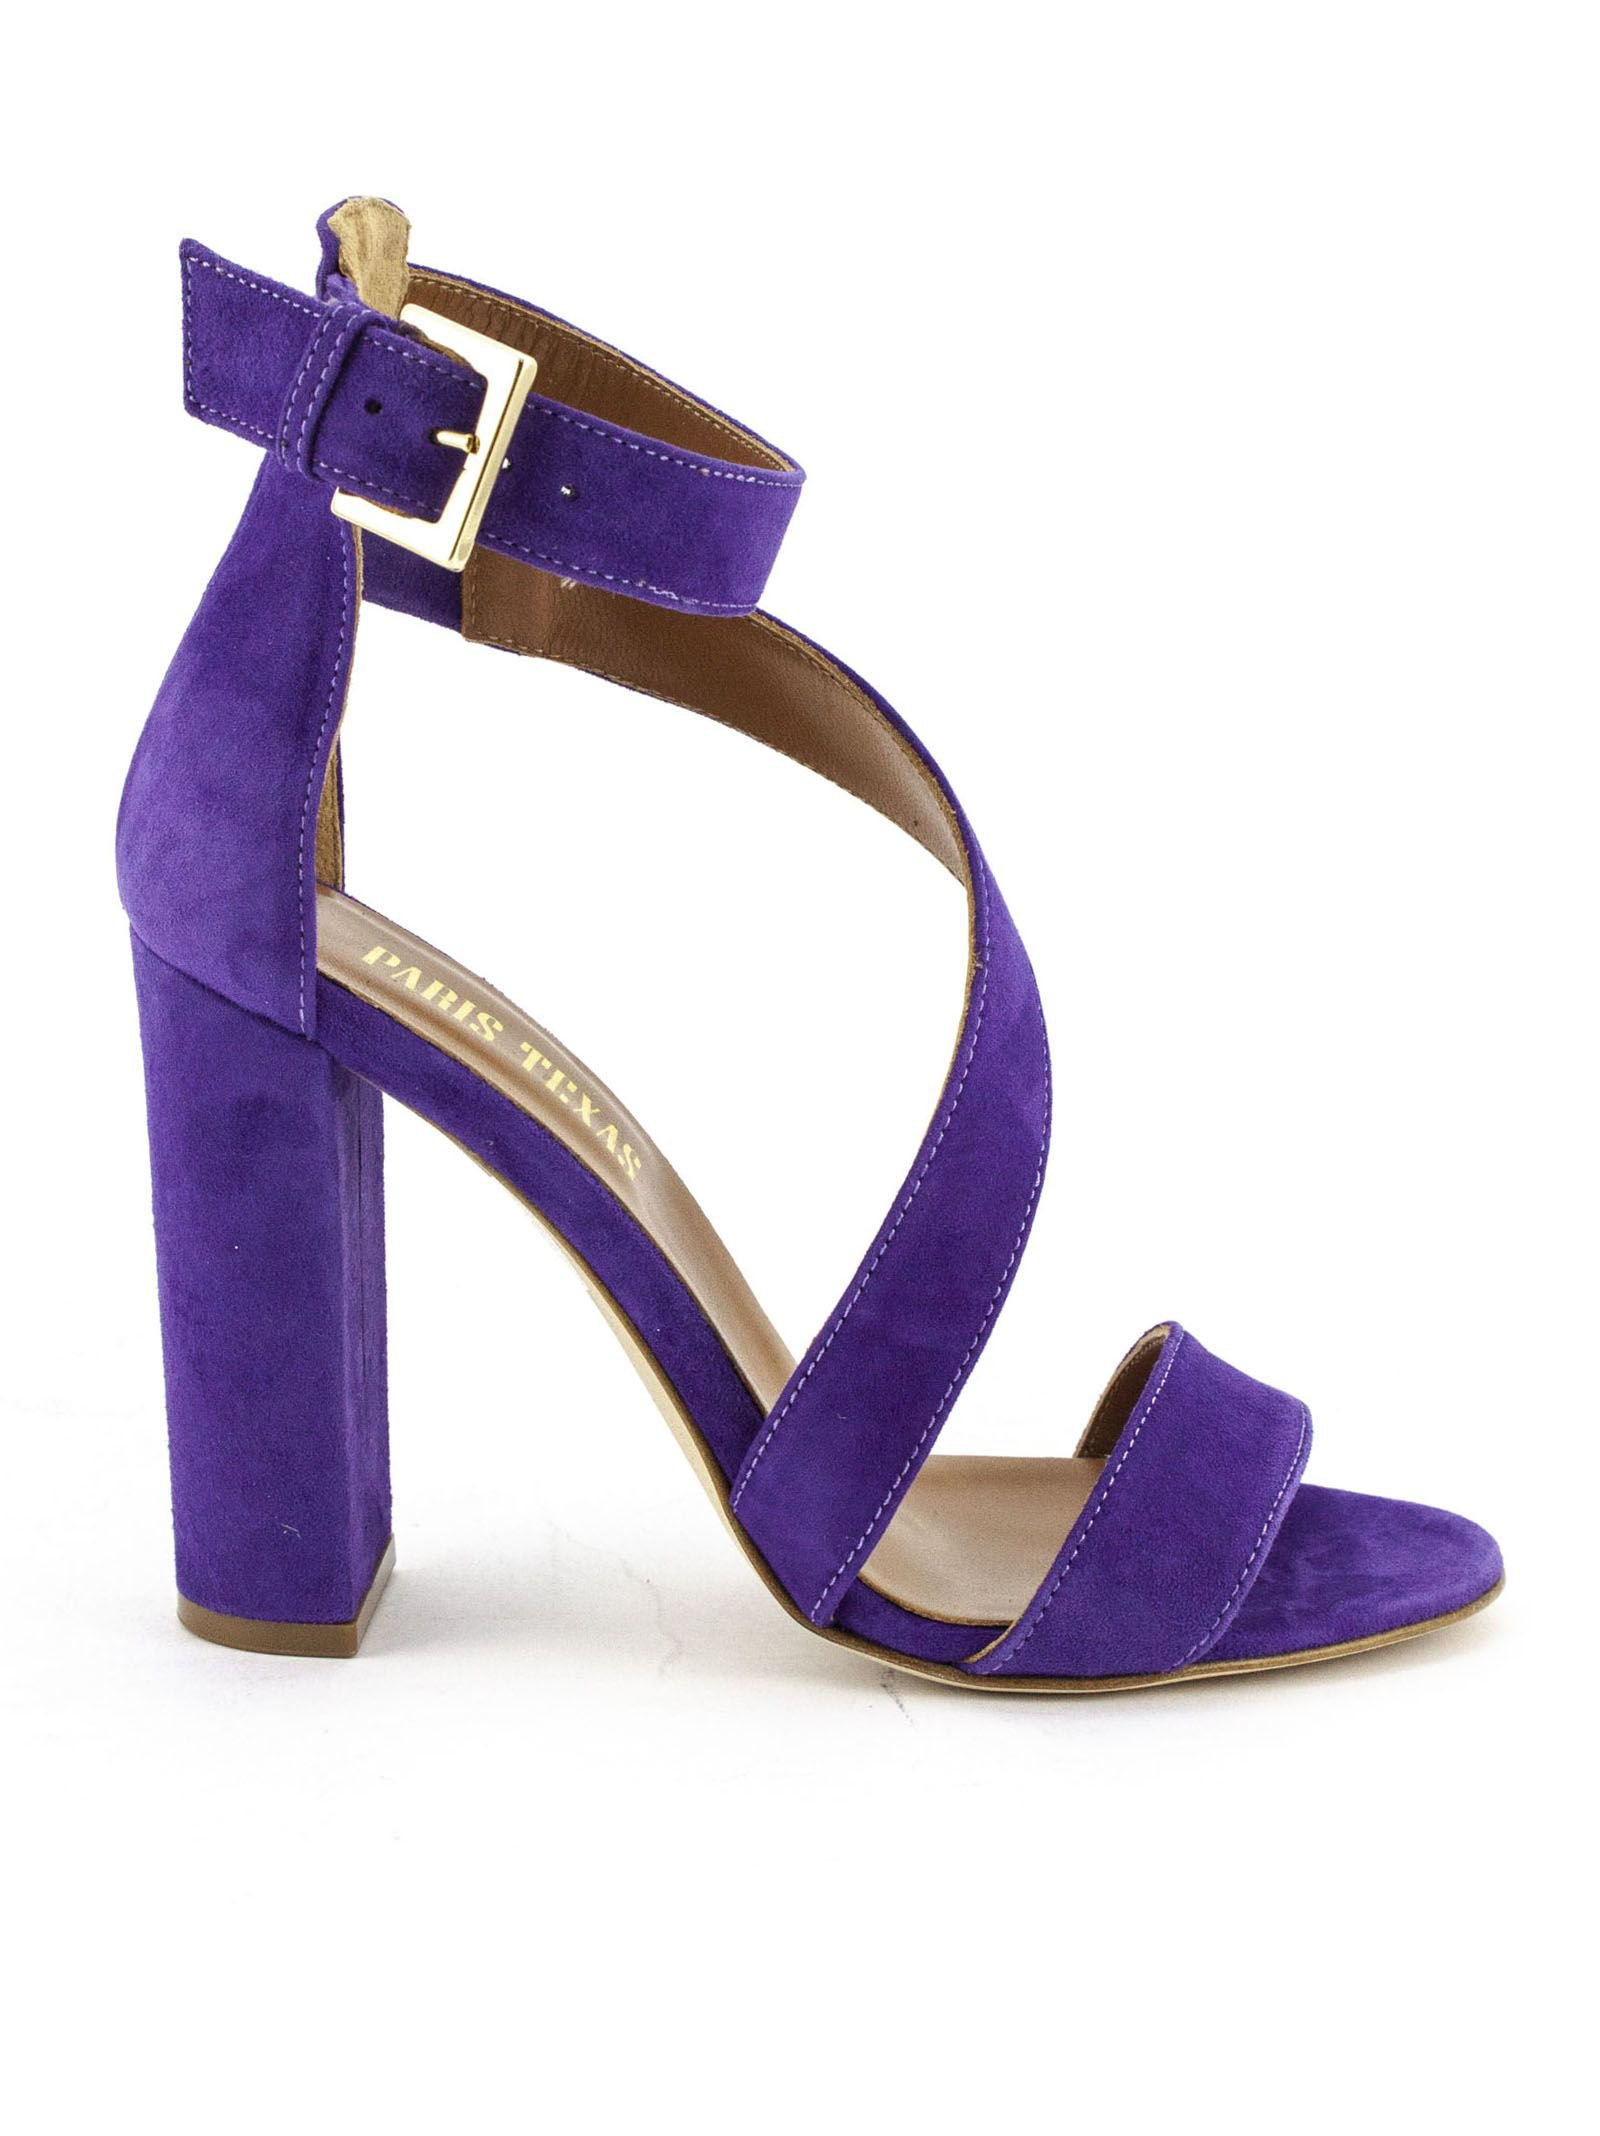 Paris Texas Purple Suede Sandals